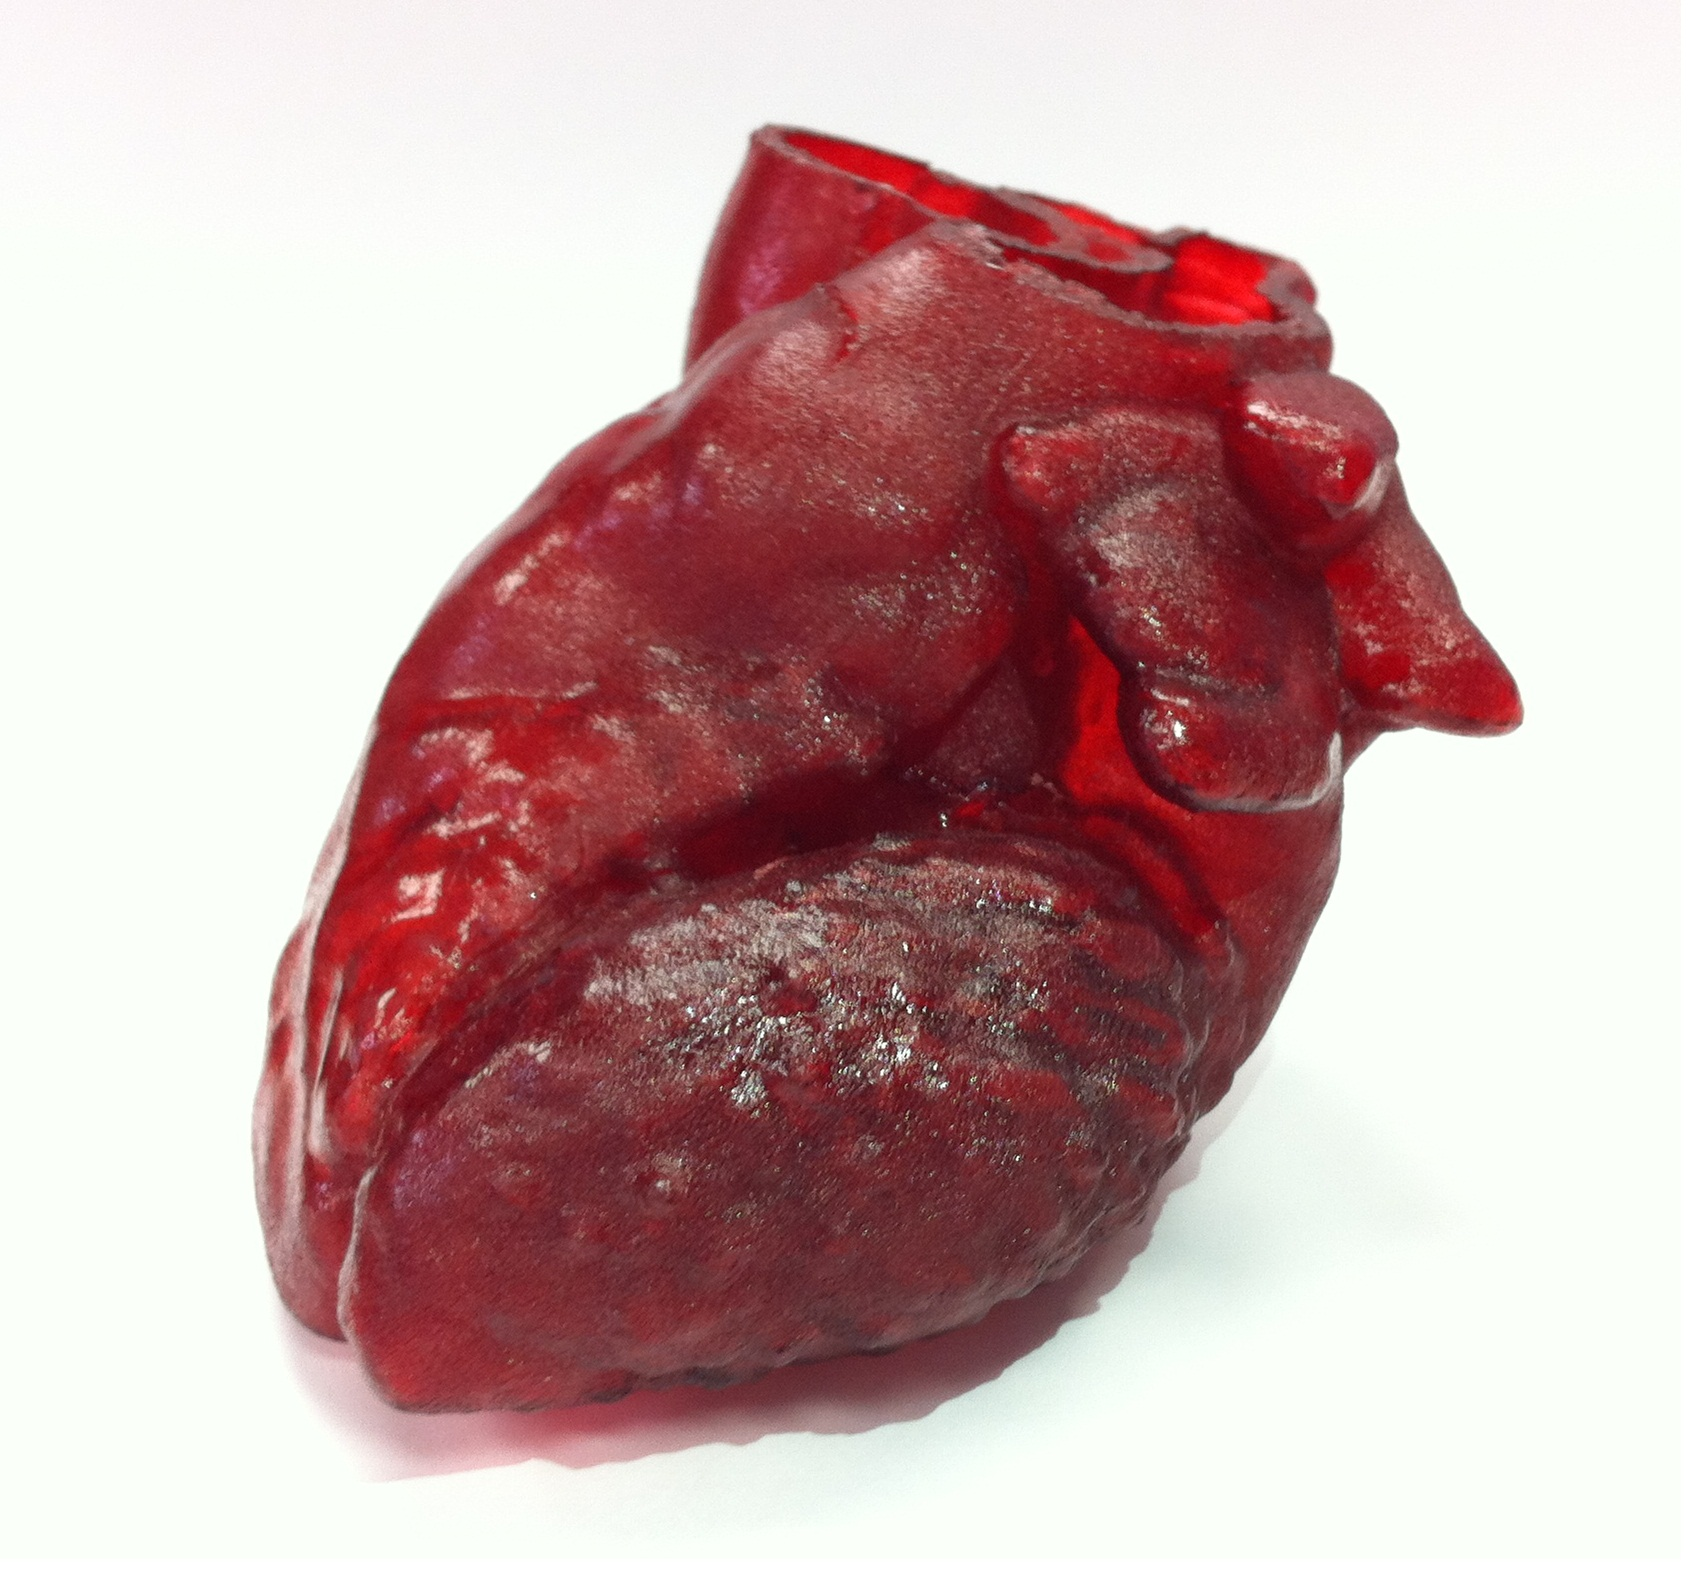 Researchers aim to build human hearts using 3-D printer